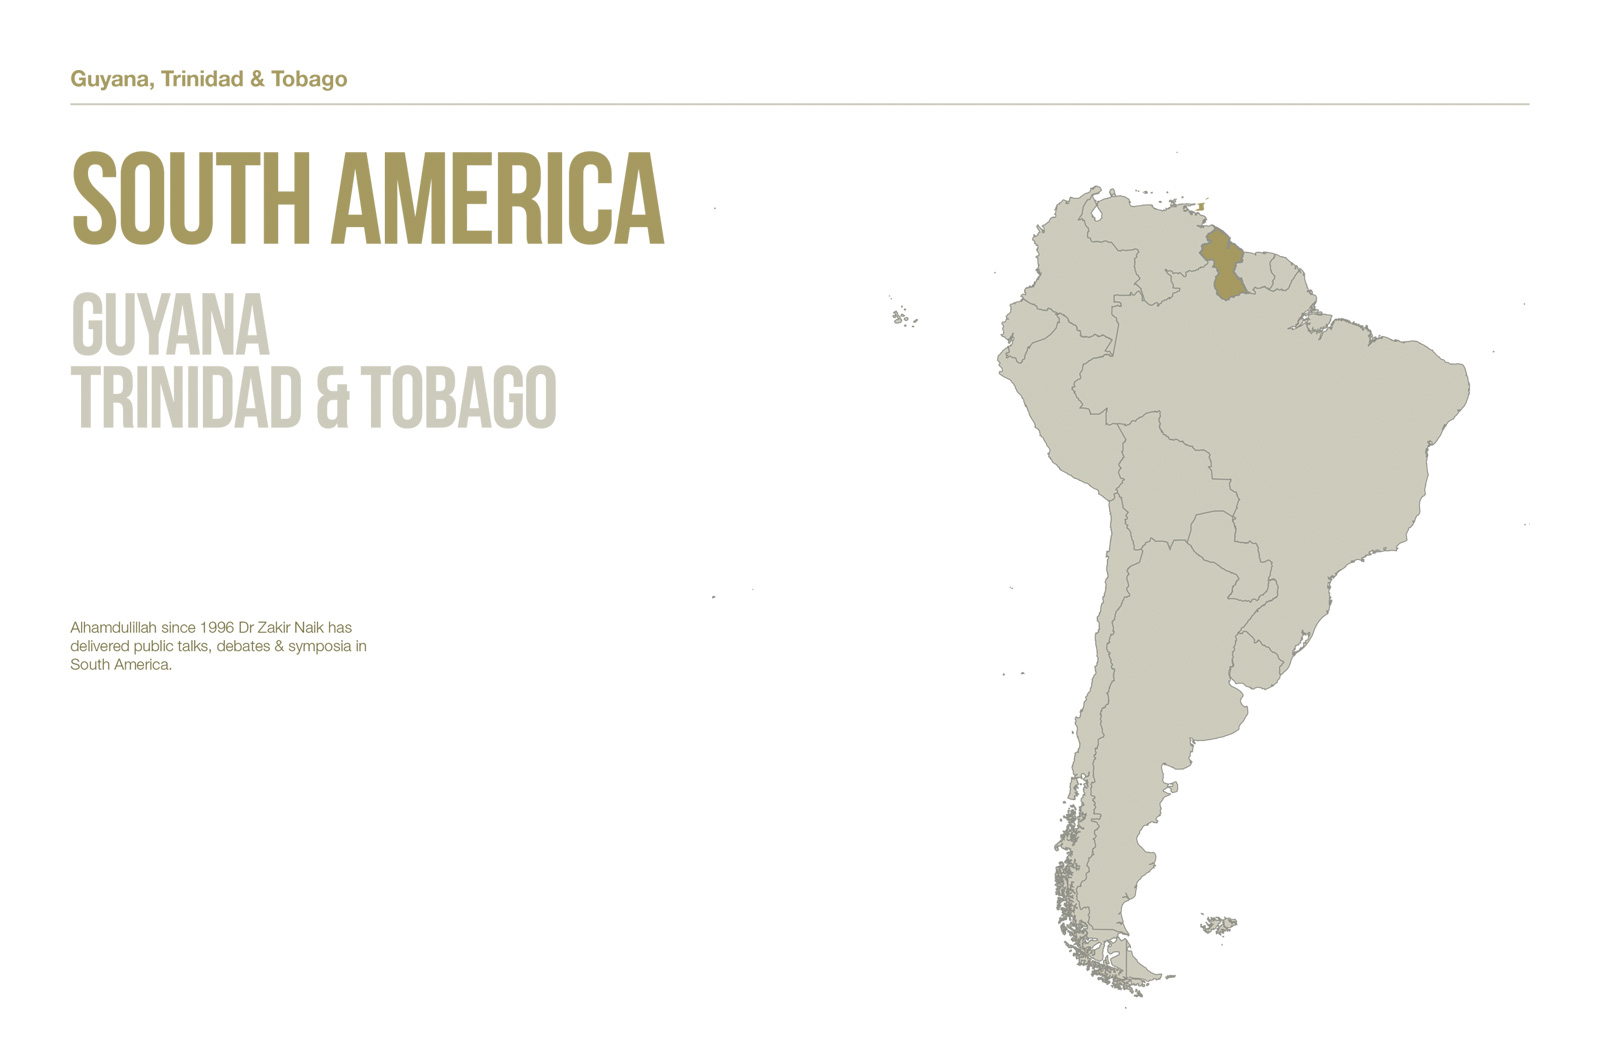 Public Lectures - South America